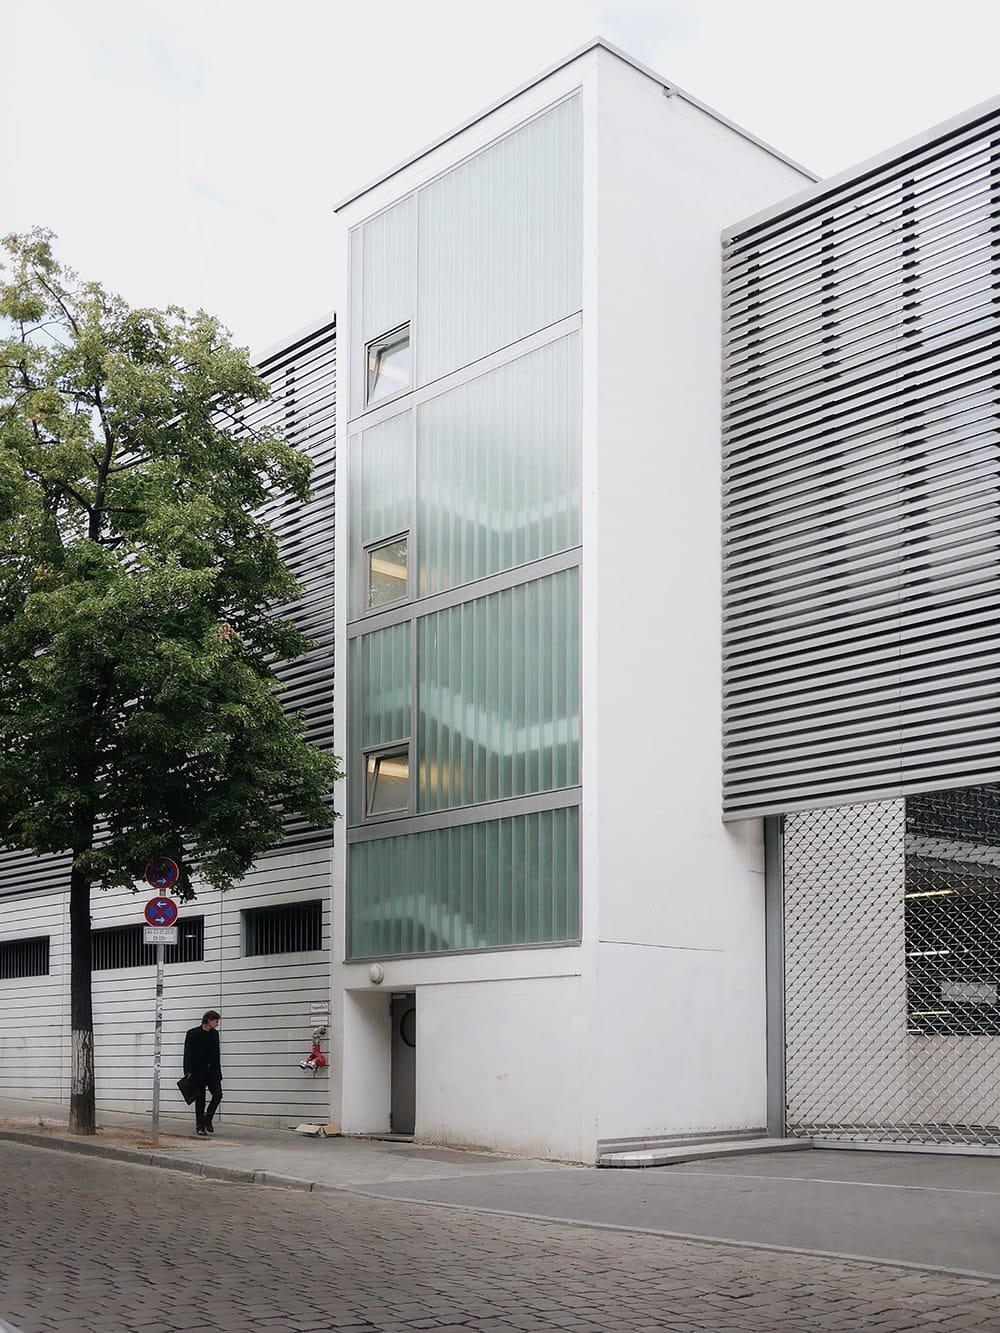 Glass staircase with glazed facade of white building. Berlin